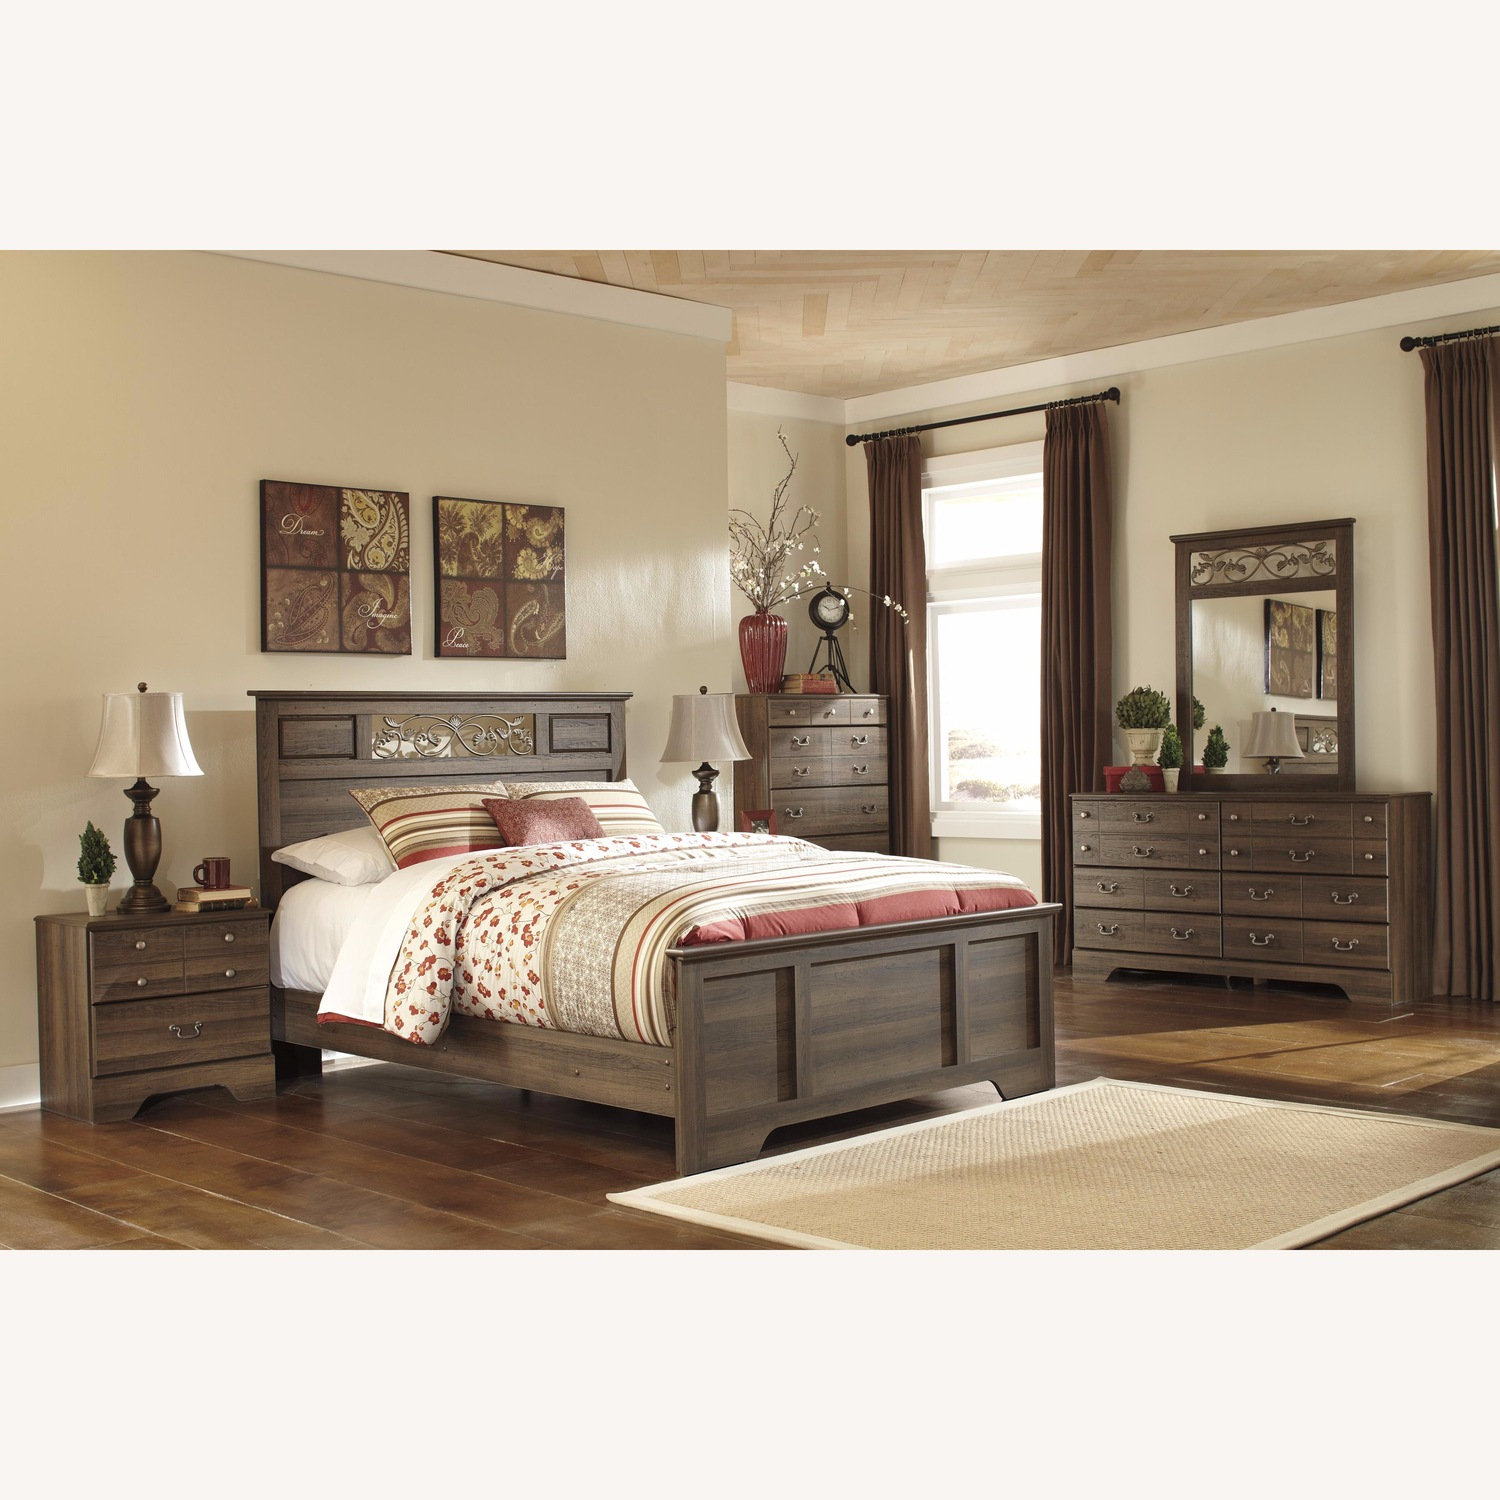 Ashley Allymore Queen Panel Bed - image-1